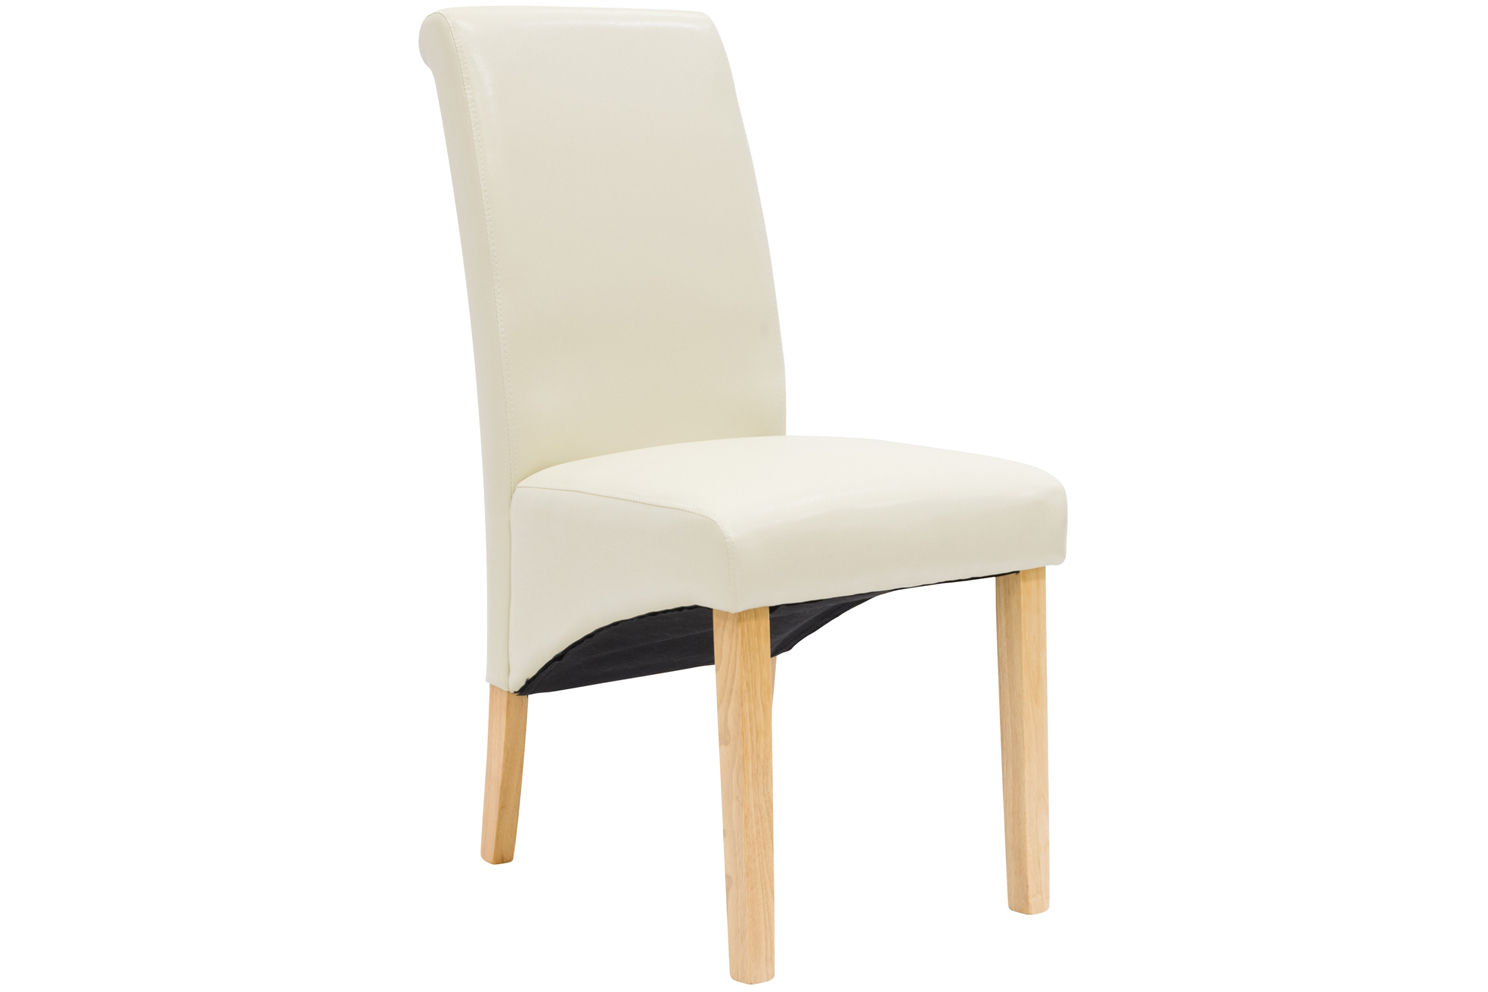 buy chair covers cheap plastic with wooden legs to uk oscarsfurniture home